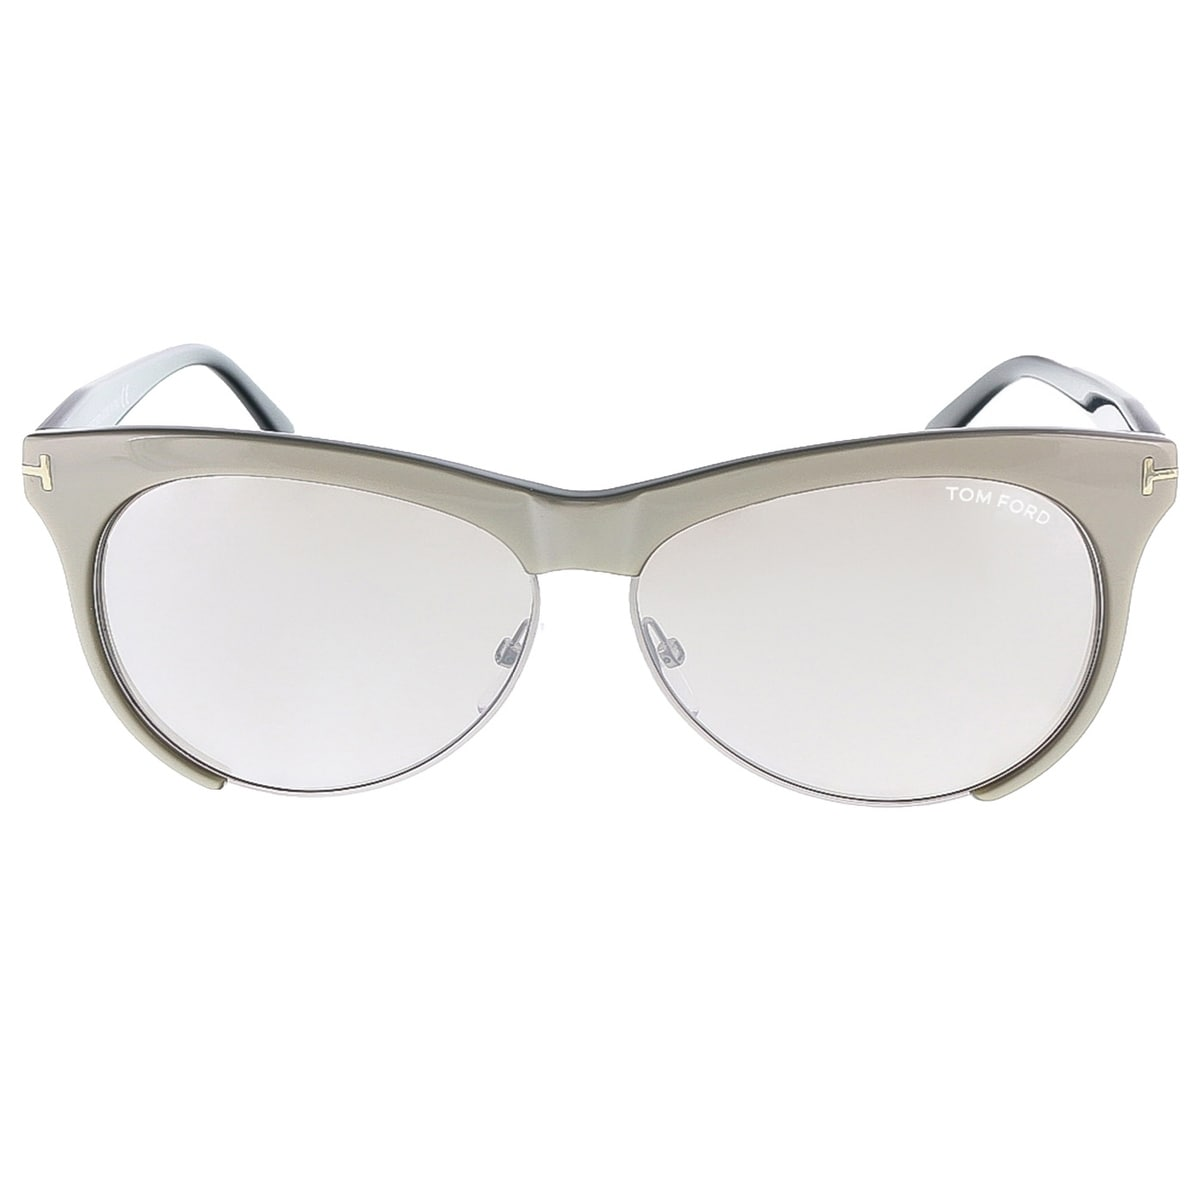 d23c1679c5 Shop Tom Ford FT0365 S 38G LEONA Grey  Silver Rectangle sunglasses - Ships  To Canada - Overstock - 13318427